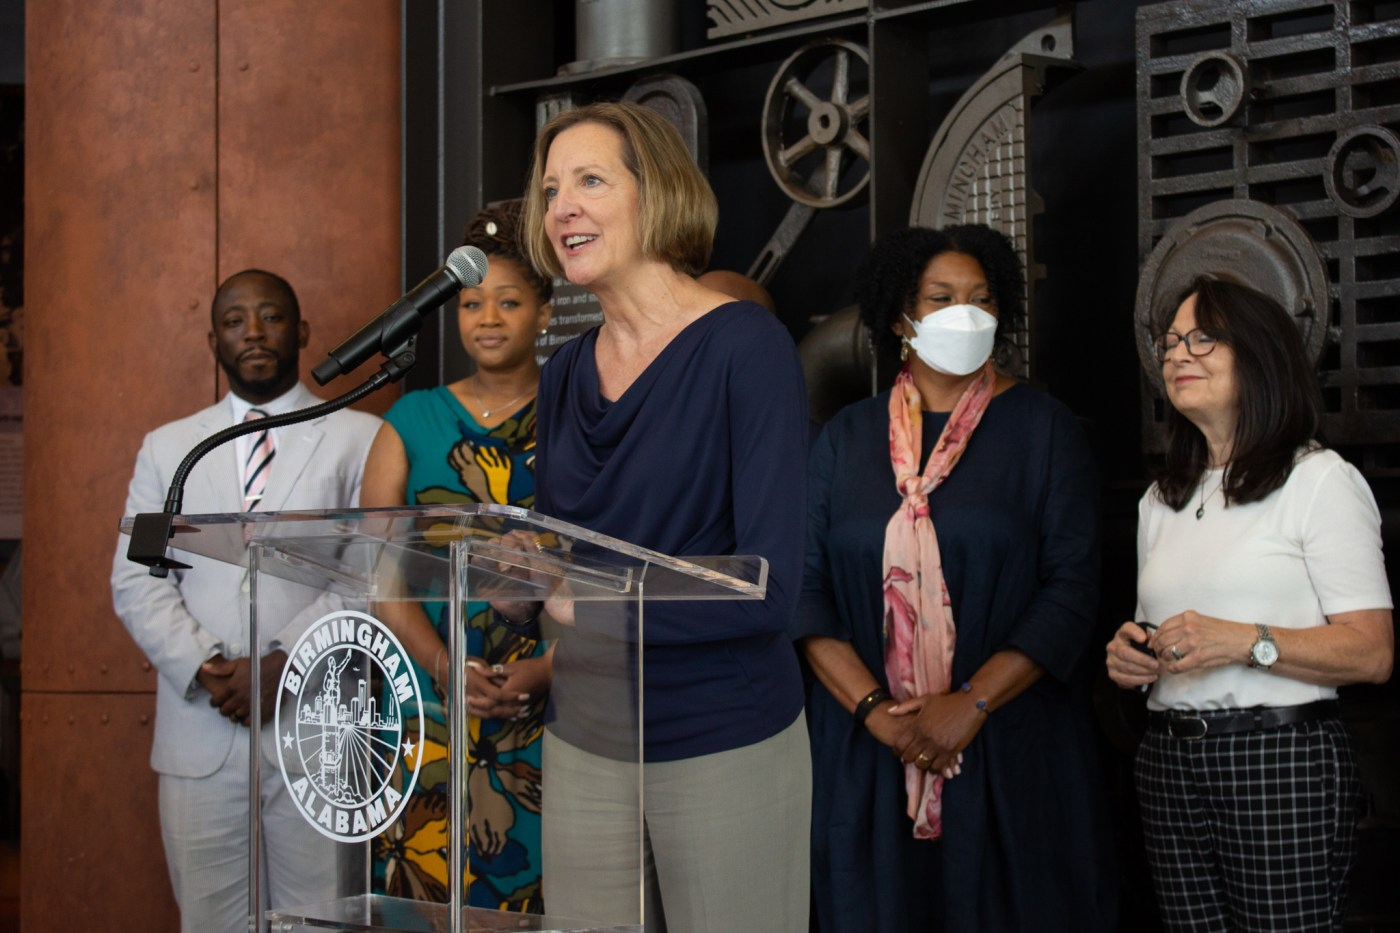 Darlene Negrotto, Vulcan Park & Museum's CEO, announced the Fourth of July fireworks celebration. Photo by Libby Foster for Bham Now.